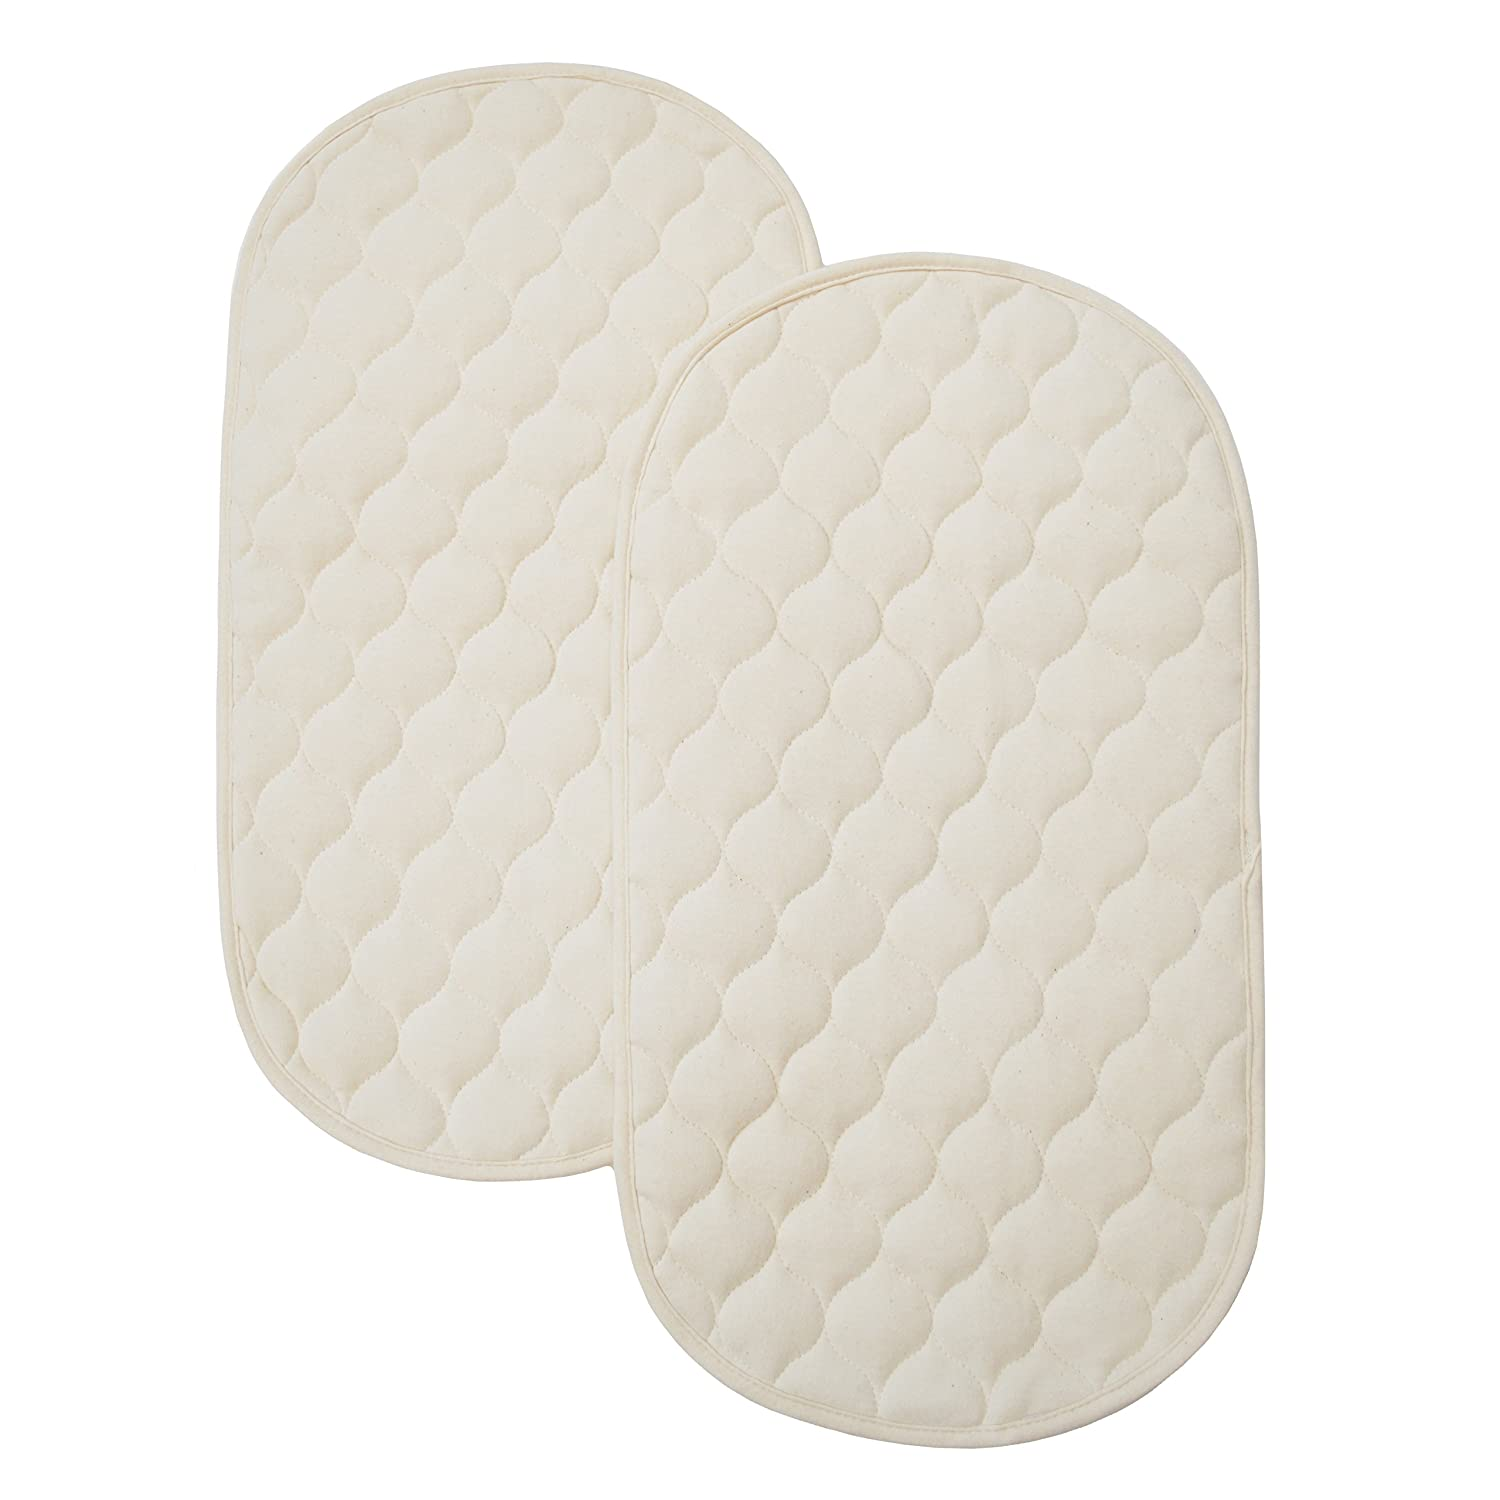 American Baby Company Natural Waterproof Quilted Playard 2 Pack Changing Table Pads Made with Organic Cotton 82769-NA